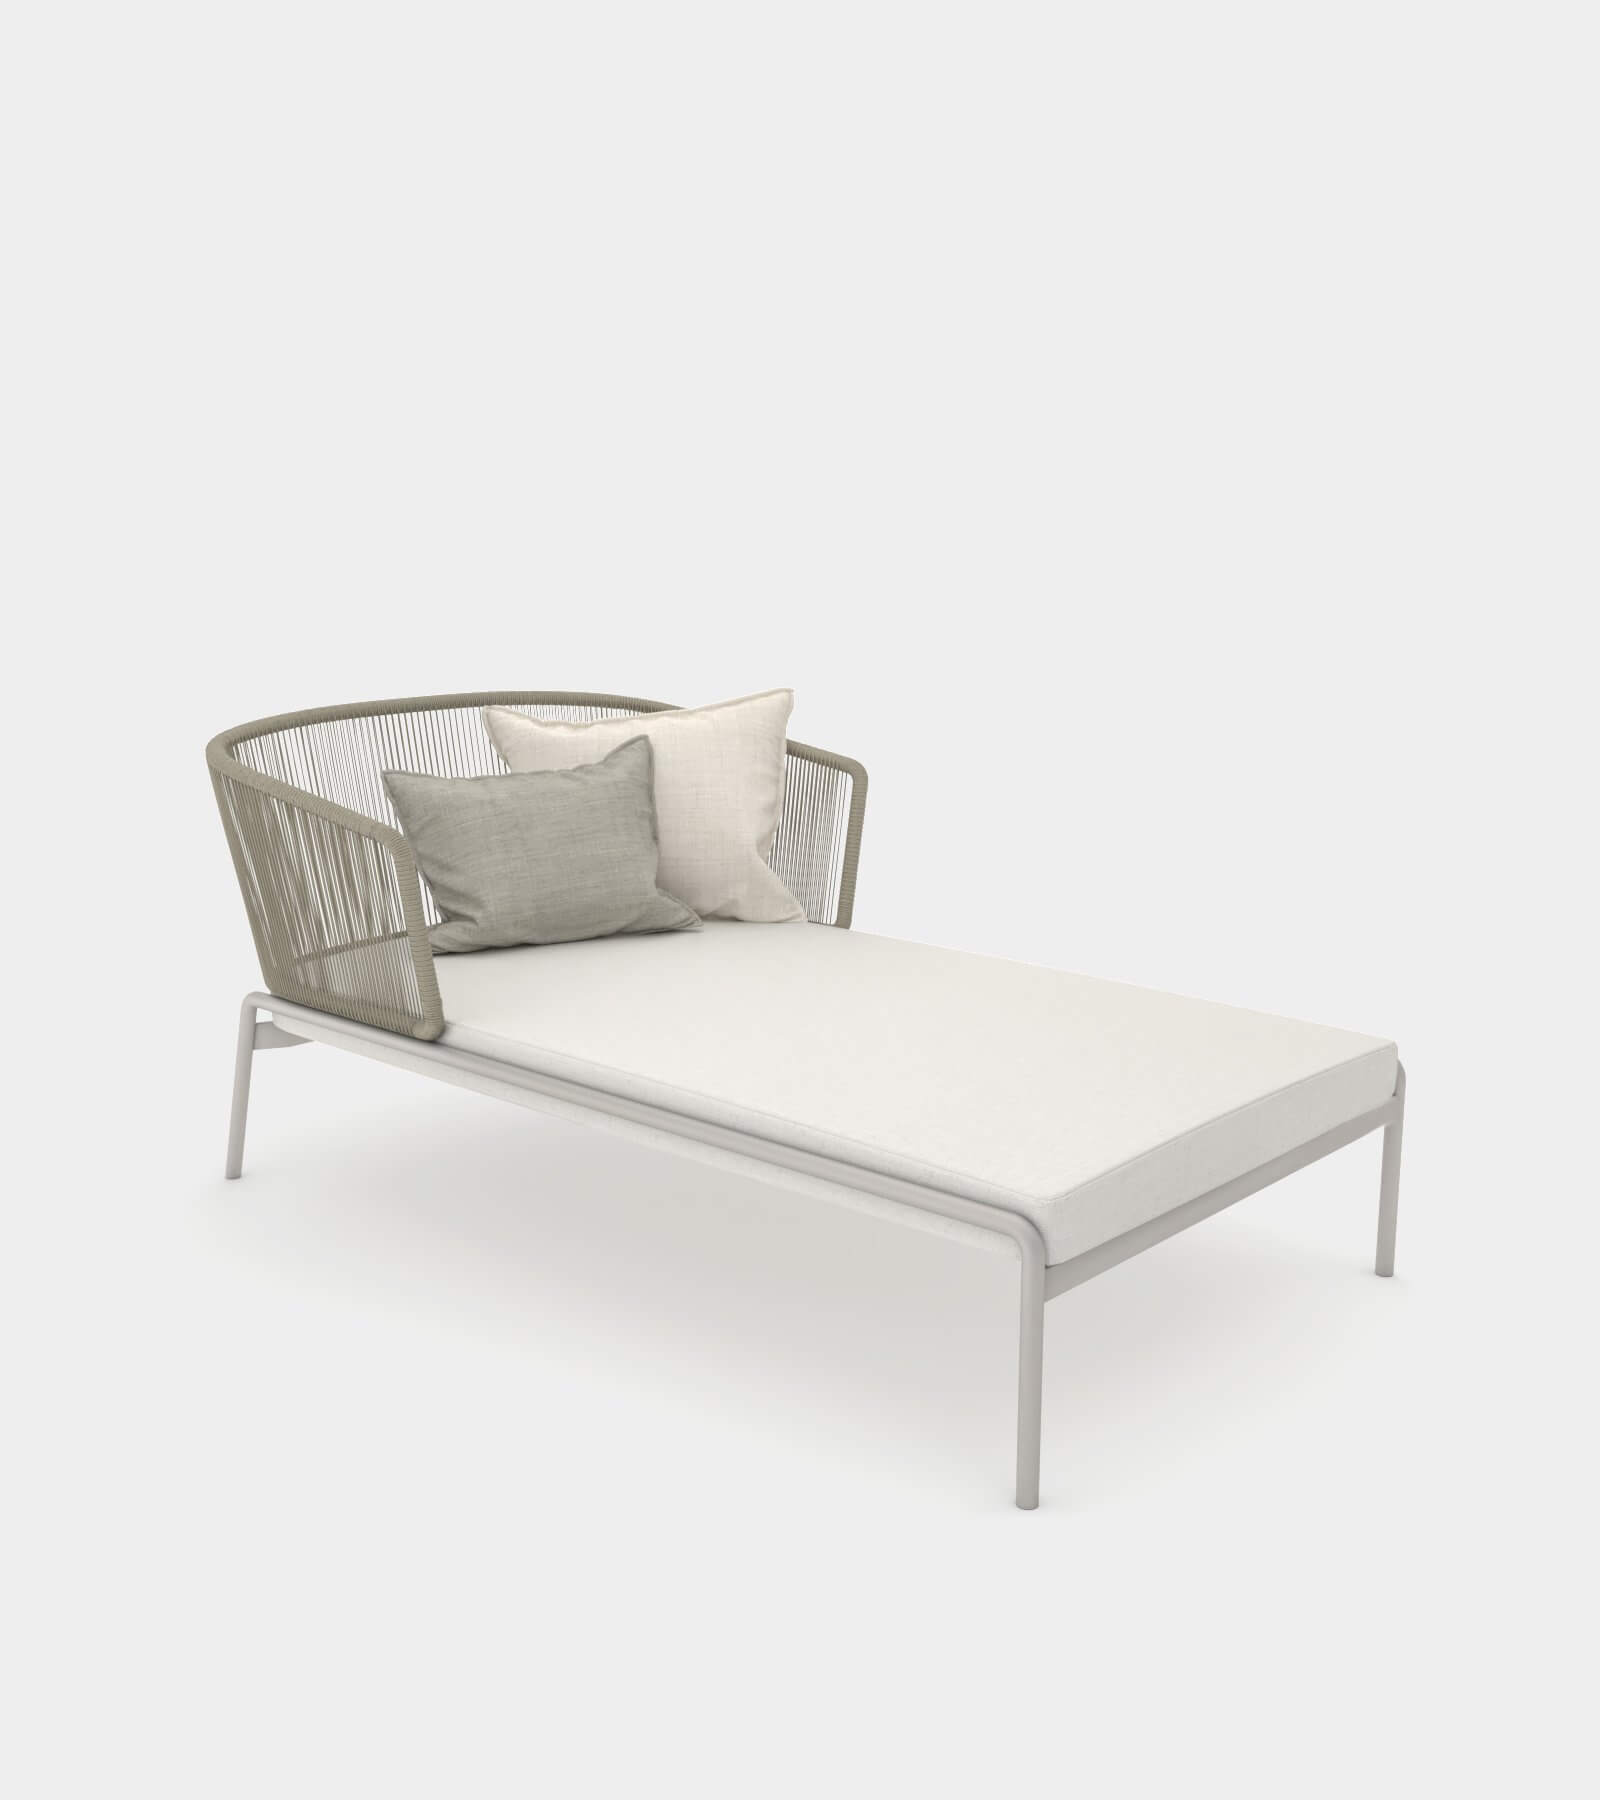 - Outdoor Pool Chaise Lounge - 3D Model